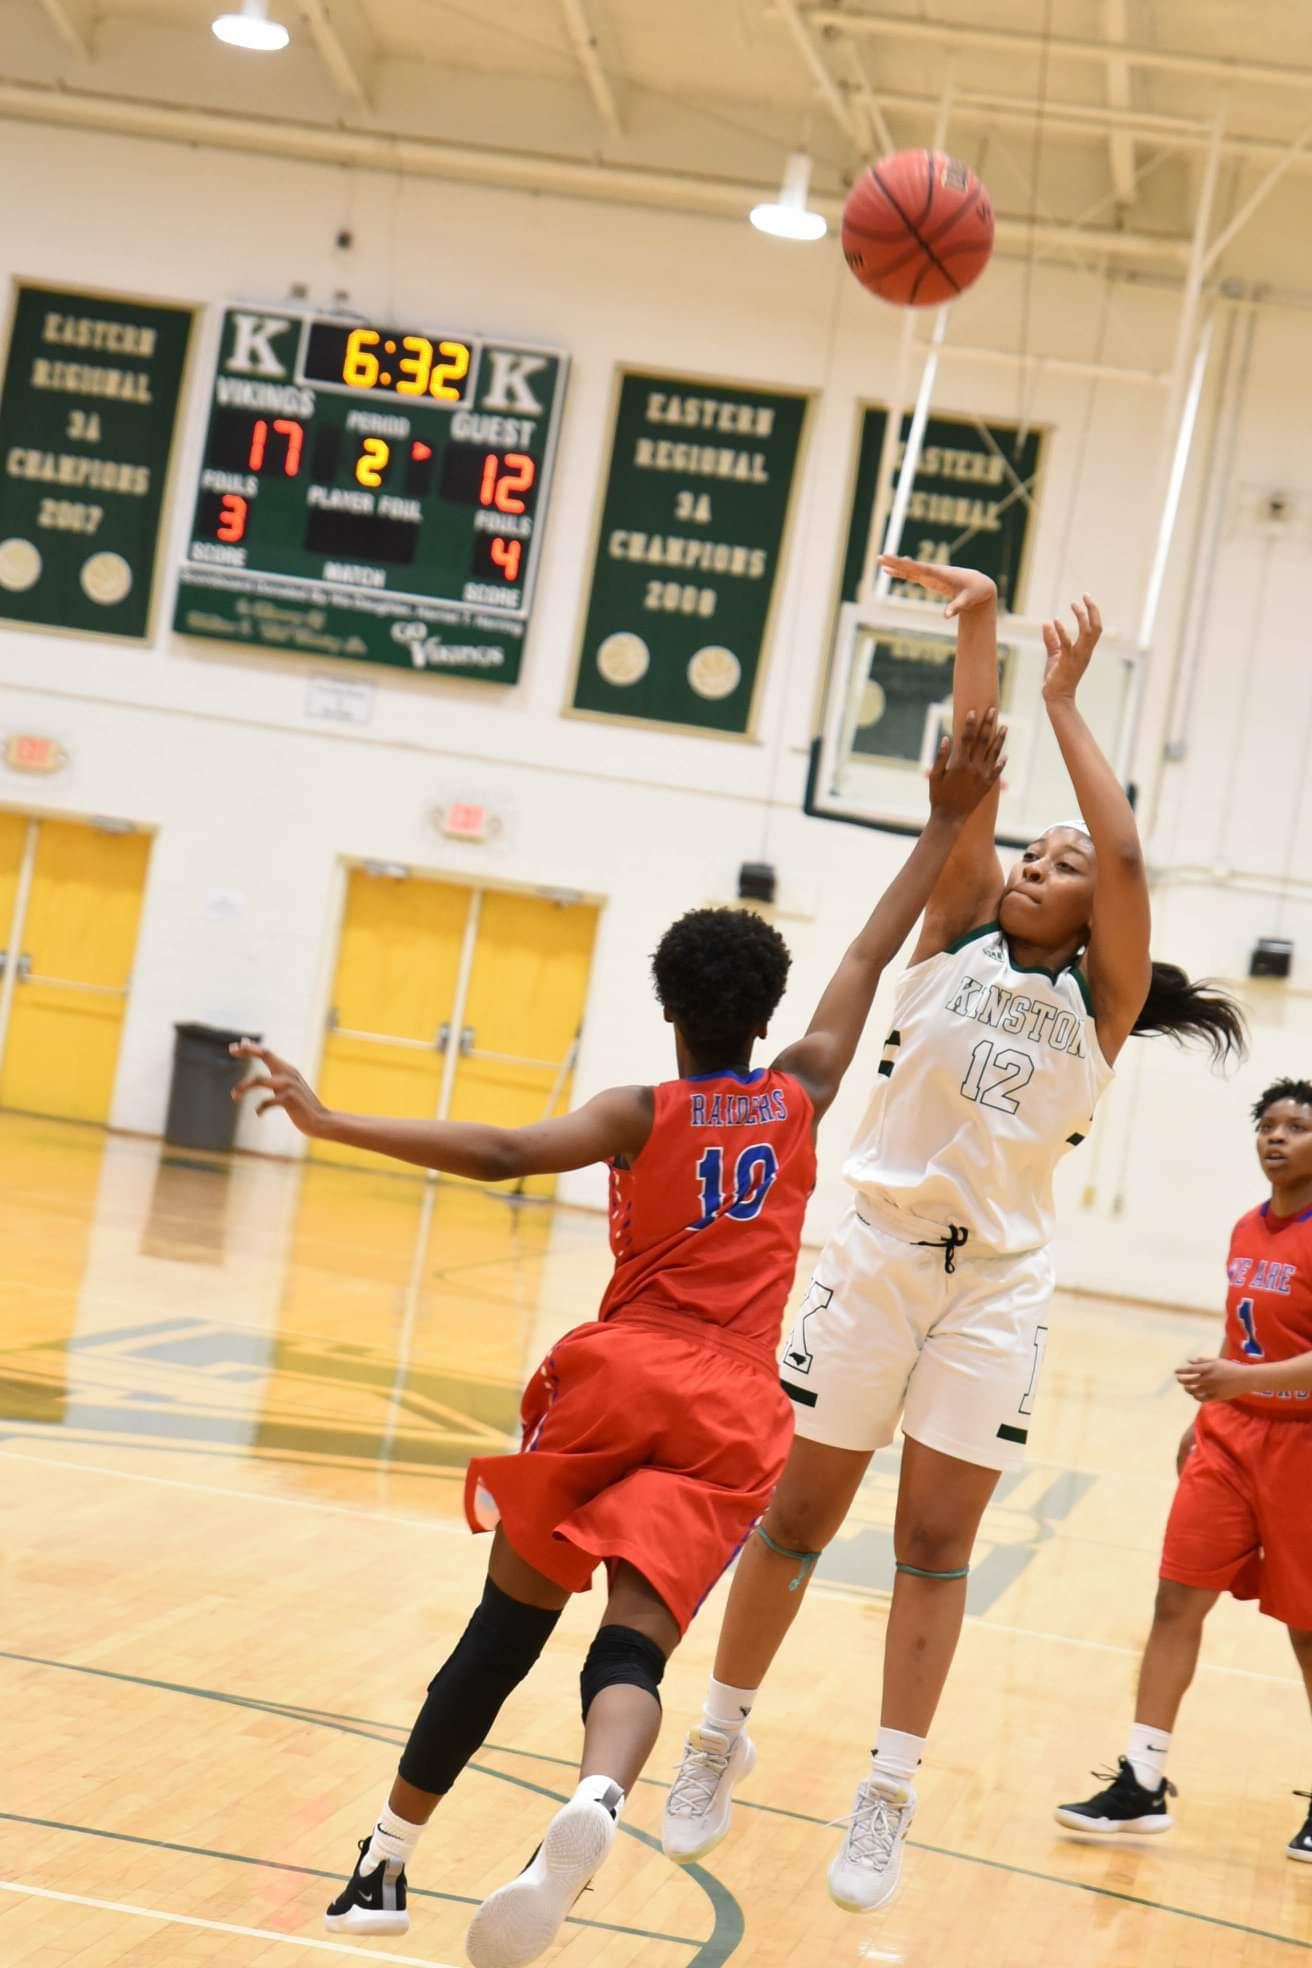 Kinston's Quiaira Powell goes up for a jump shot as High Point Andrews' Anaya Cureton closes out during the third-round playoff game March 2. The Vikings hope to reach their second straight Eastern Regionals with a win over Ledford Senior Tuesday. Photo by William 'Bud' Hardy